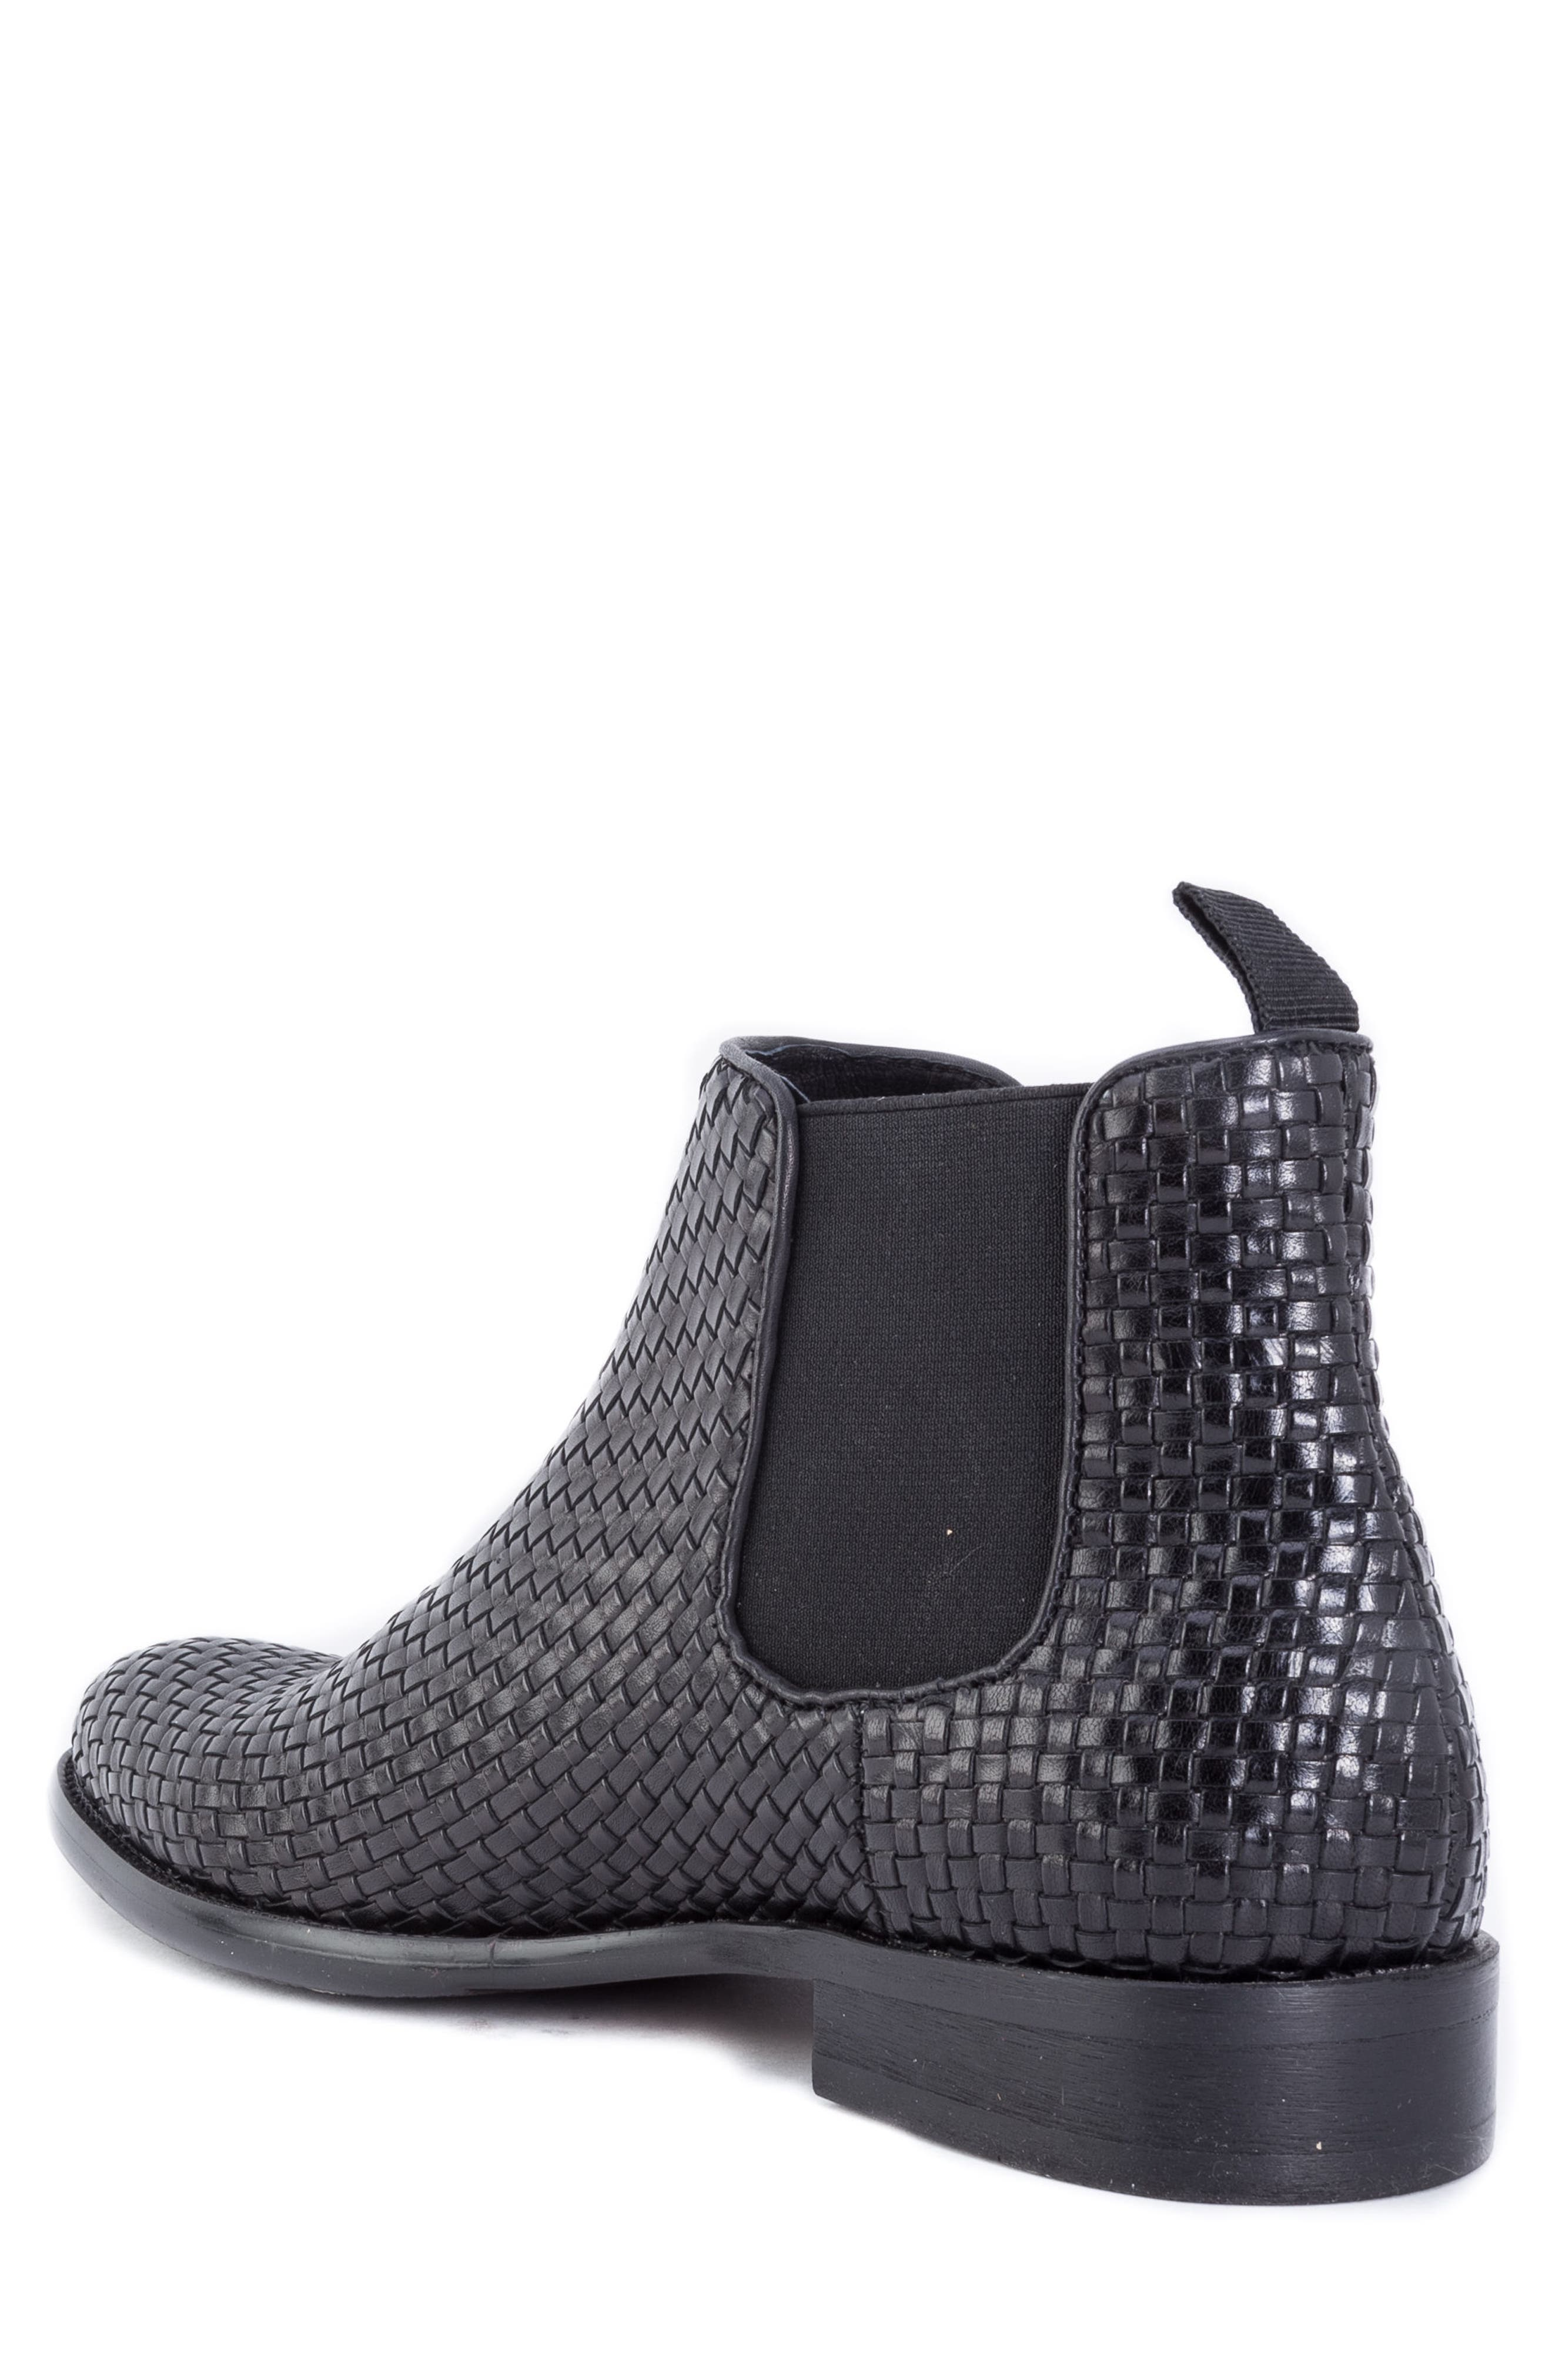 Woodward Woven Chelsea Boot,                             Alternate thumbnail 2, color,                             BLACK LEATHER